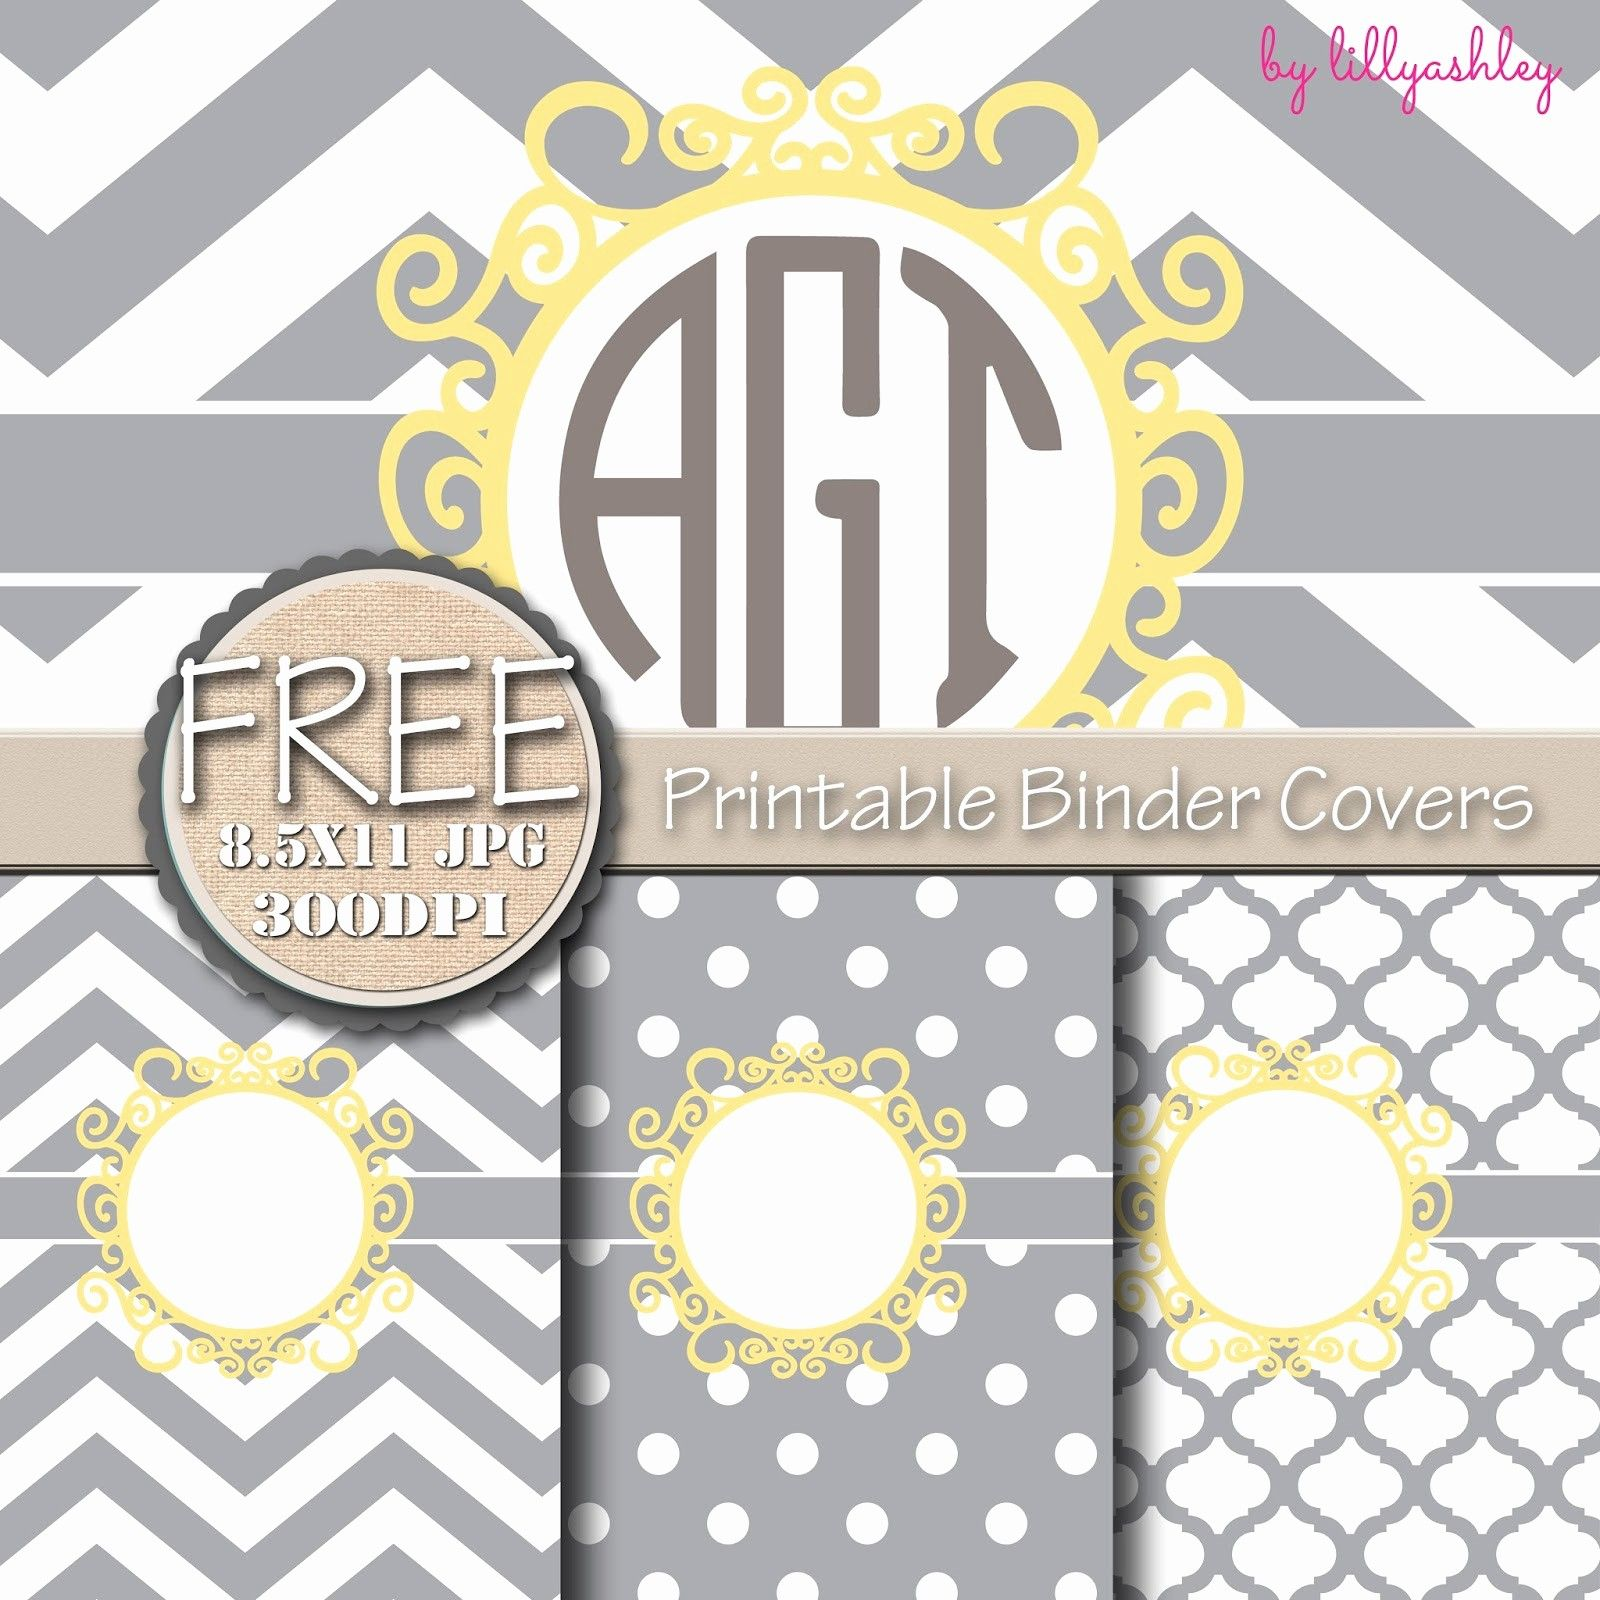 011 Free Binder Cover Templates Printable Editable Covers